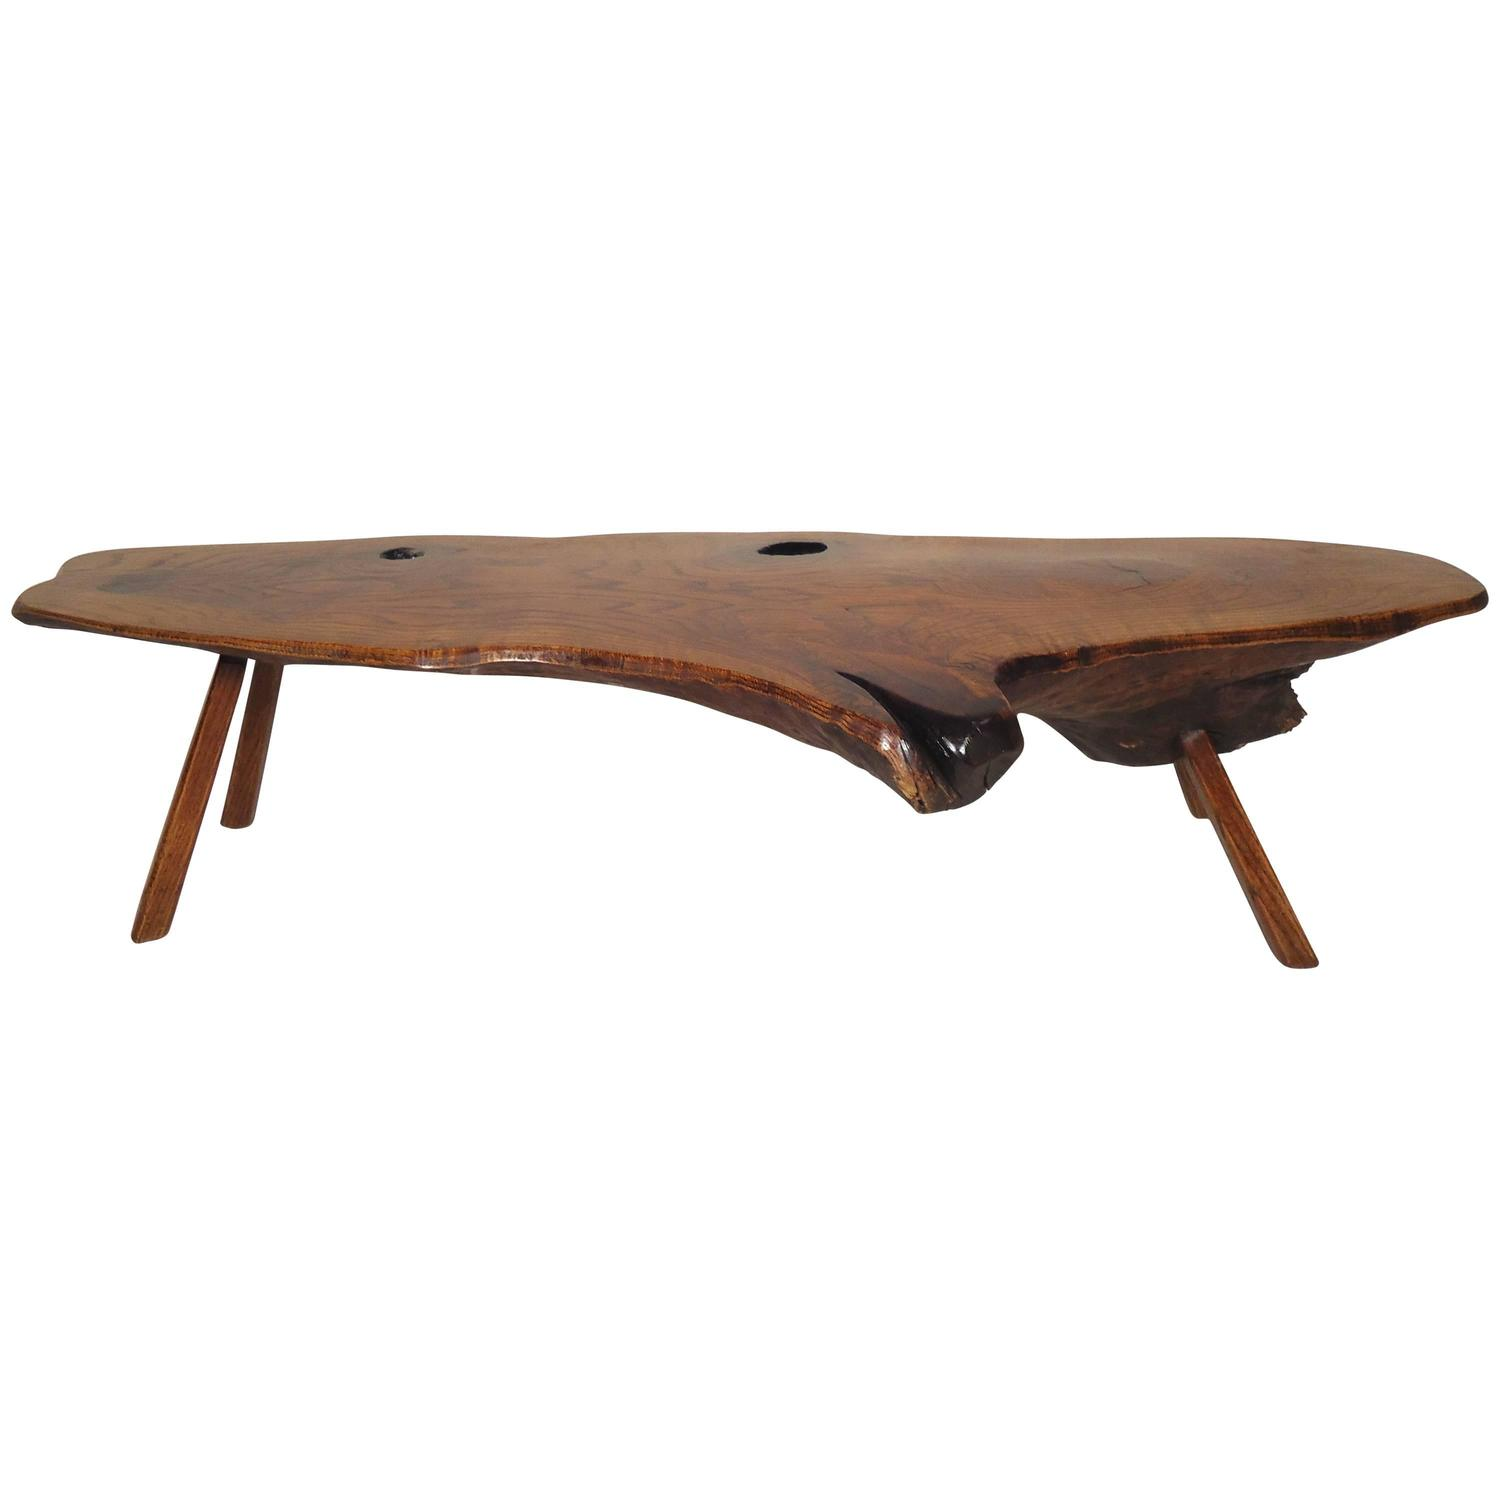 Live Edge Square Coffee Table: Mid-Century Modern Live Edge Coffee Table For Sale At 1stdibs